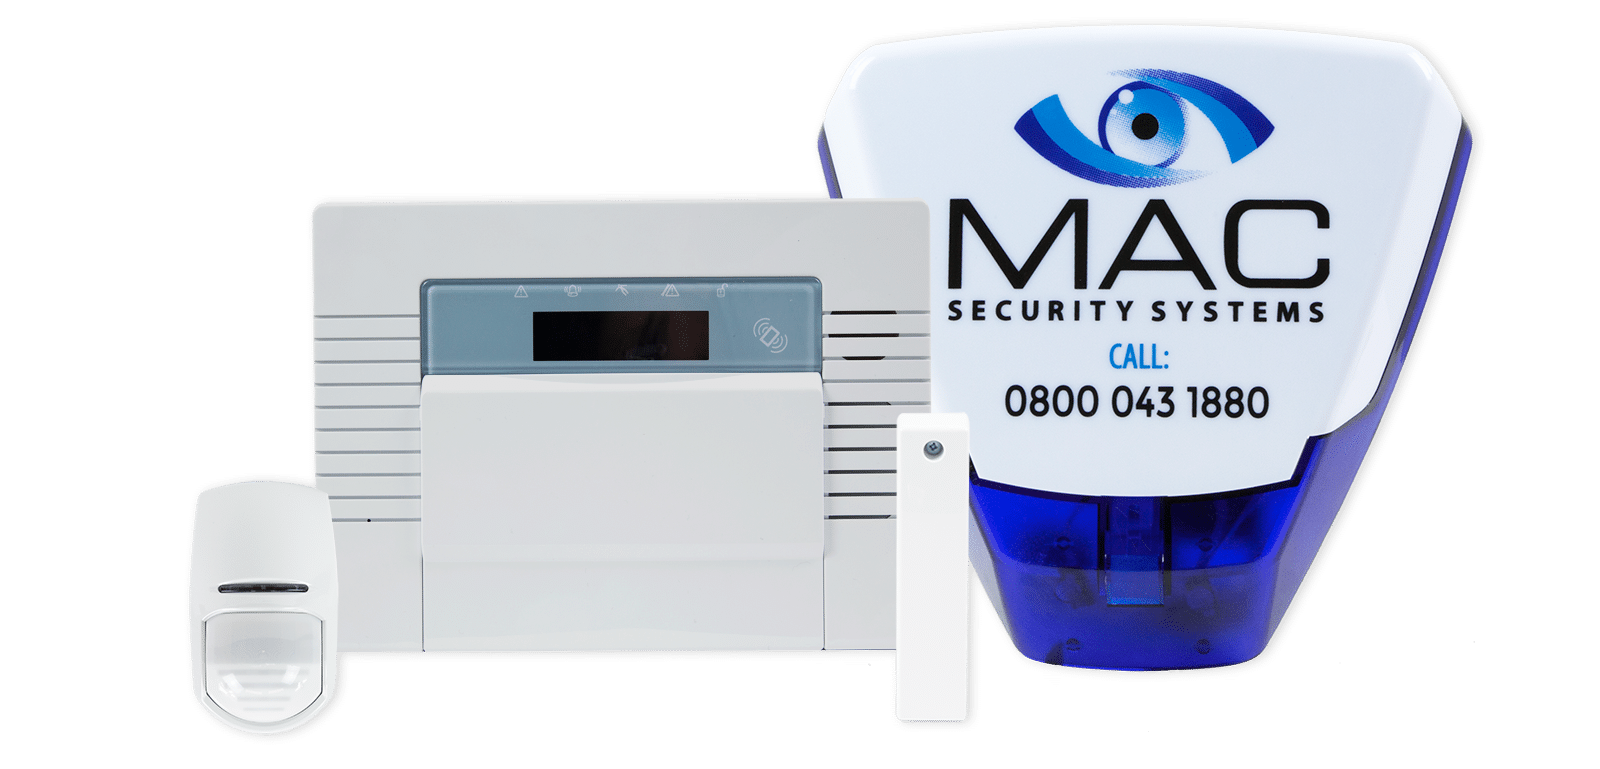 MAC Security Systems Products